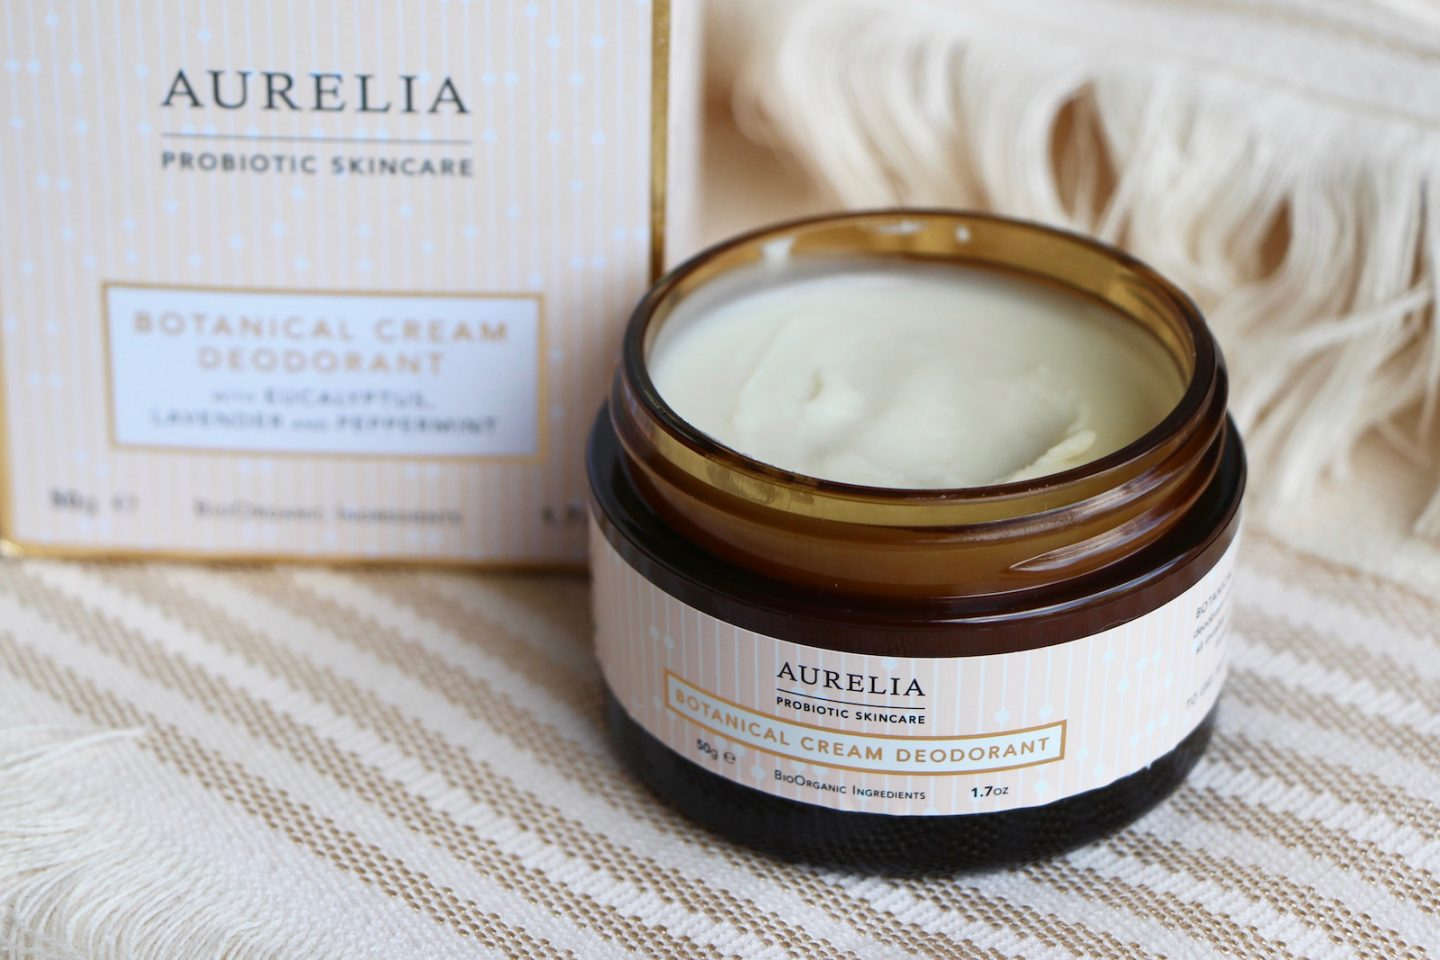 Aurelia Botanical Cream Deodorant Review Natural